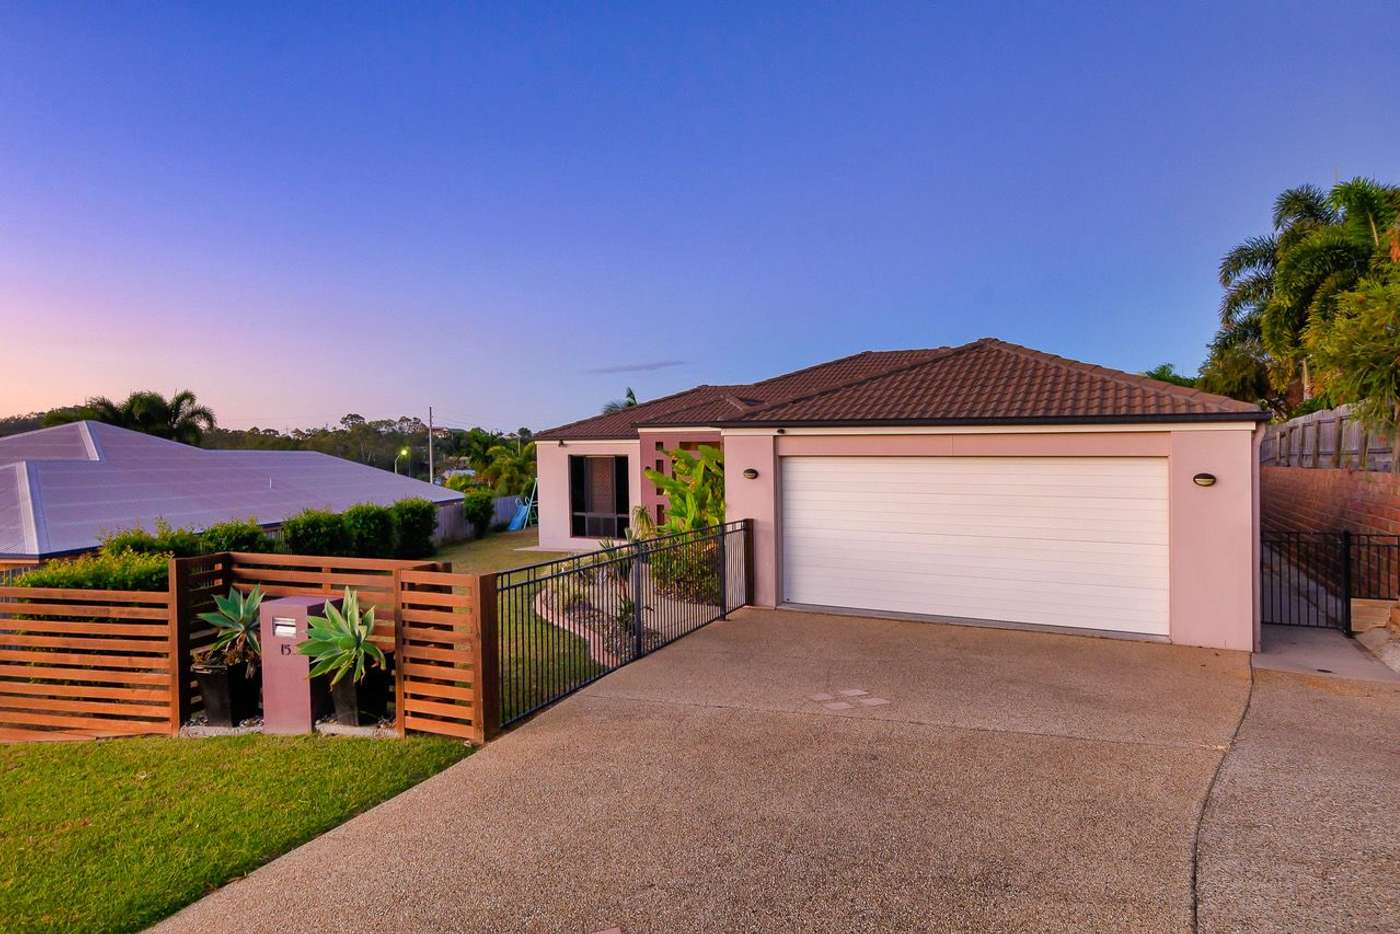 Main view of Homely house listing, 15 Sandringham Close, Telina QLD 4680